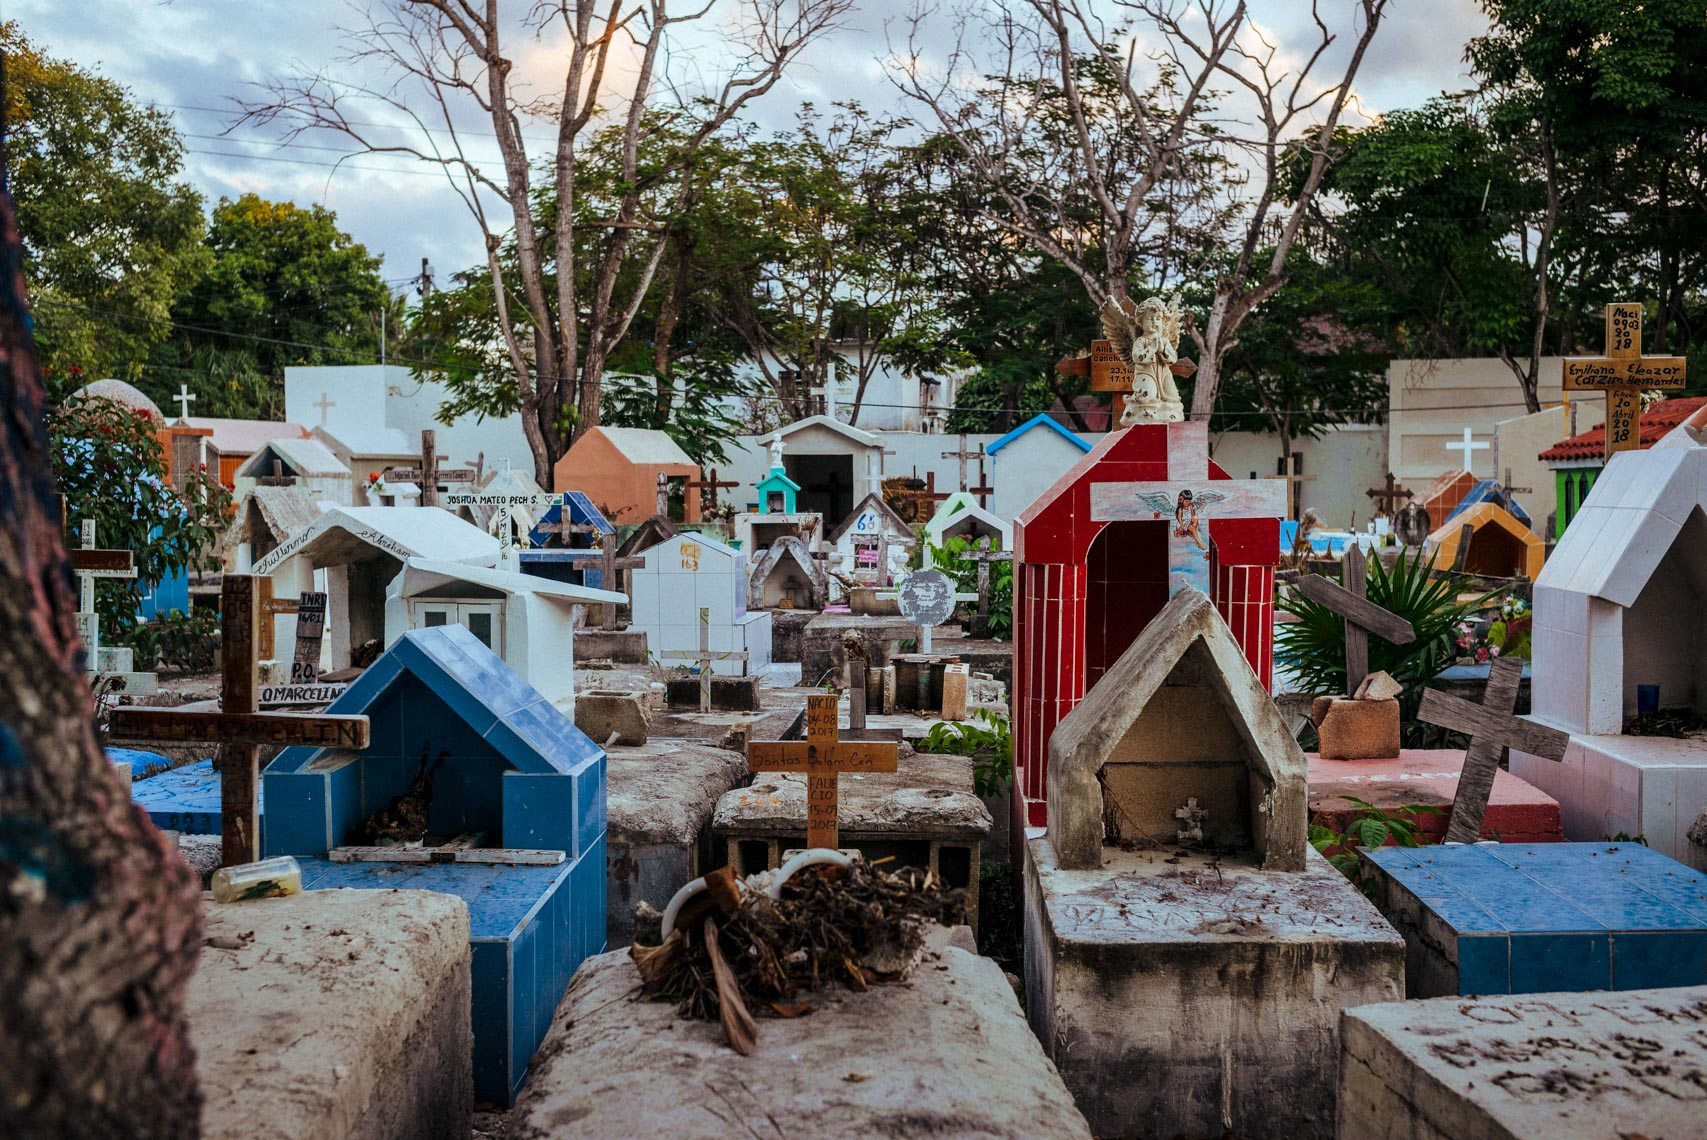 richard-schabetsberger-cemetries-of-mexico-006